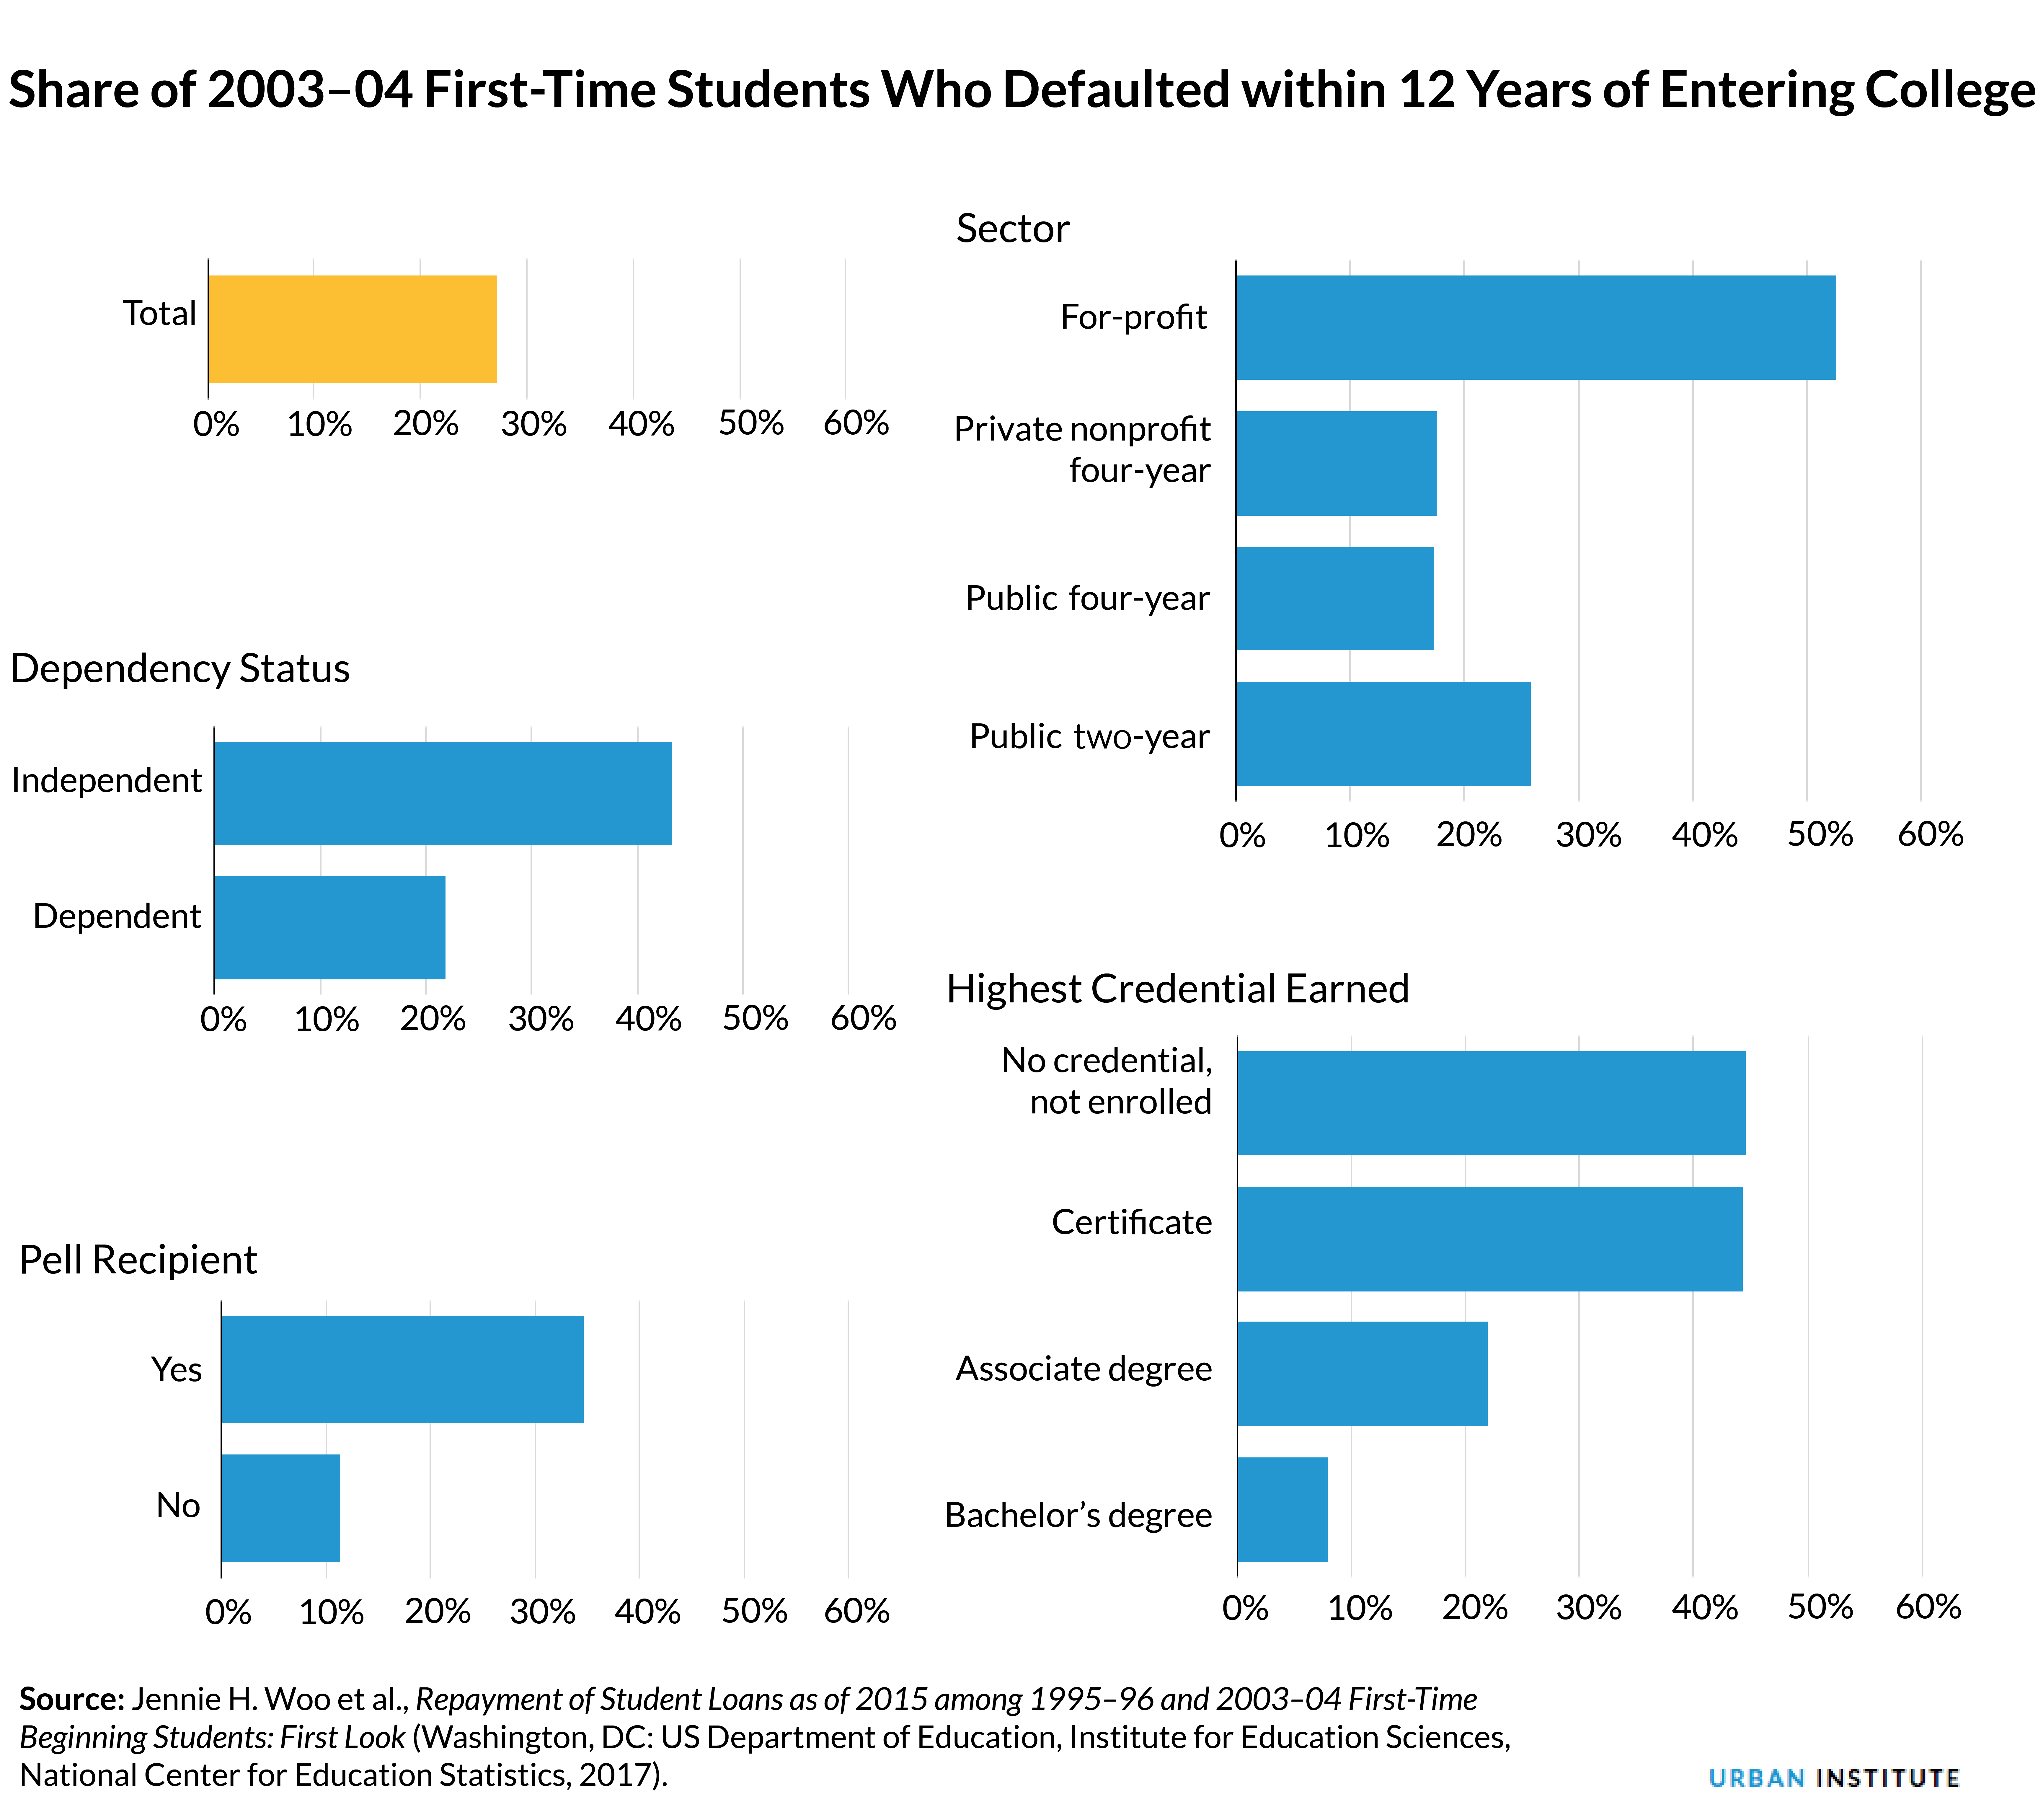 share of 2003 to 2004 first time students who defaulted within 12 years of entering college